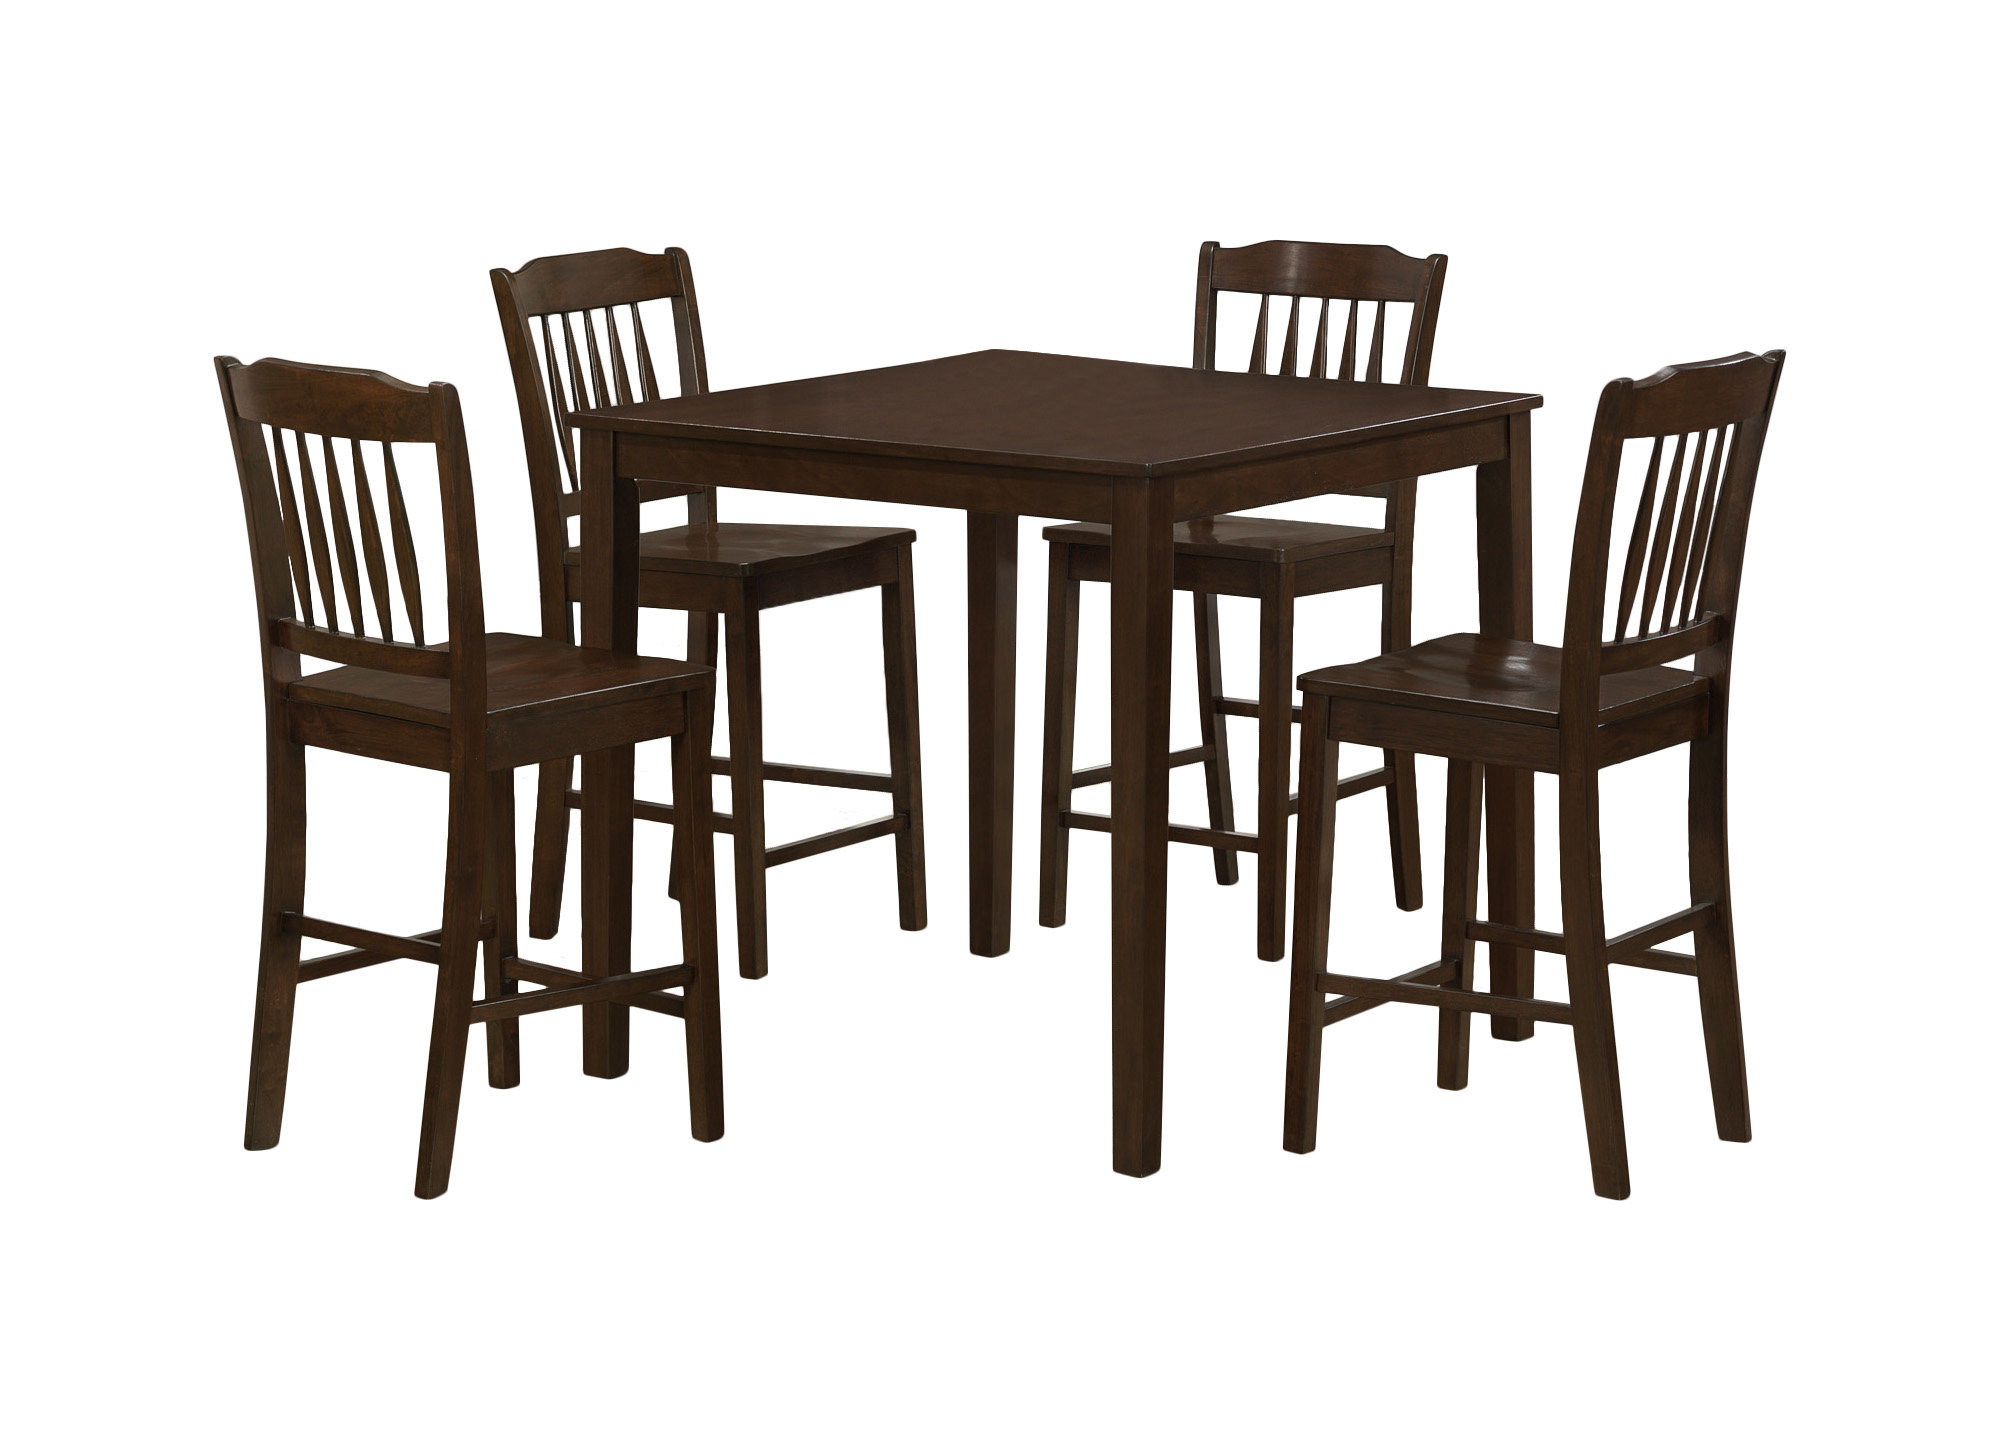 Inspiration about Monarch Specialties Inc. 5 Piece Counter Height Dining Set & Reviews In Current Saintcroix 3 Piece Dining Sets (#10 of 20)